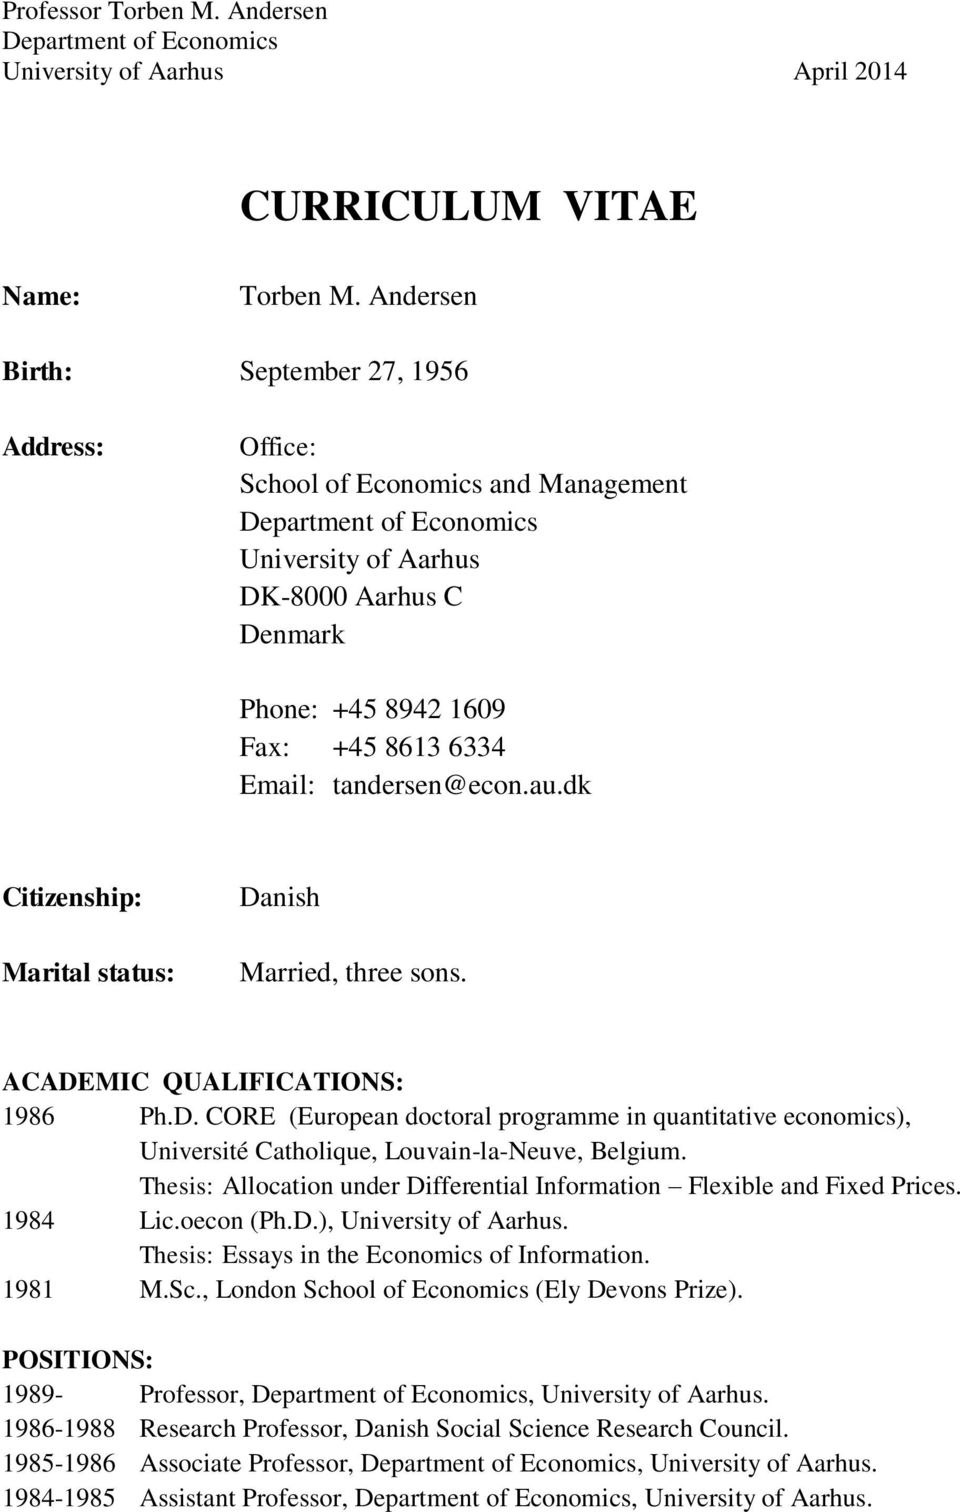 Email: tandersen@econ.au.dk Citizenship: Marital status: Danish Married, three sons. ACADEMIC QUALIFICATIONS: 1986 Ph.D. CORE (European doctoral programme in quantitative economics), Université Catholique, Louvain-la-Neuve, Belgium.